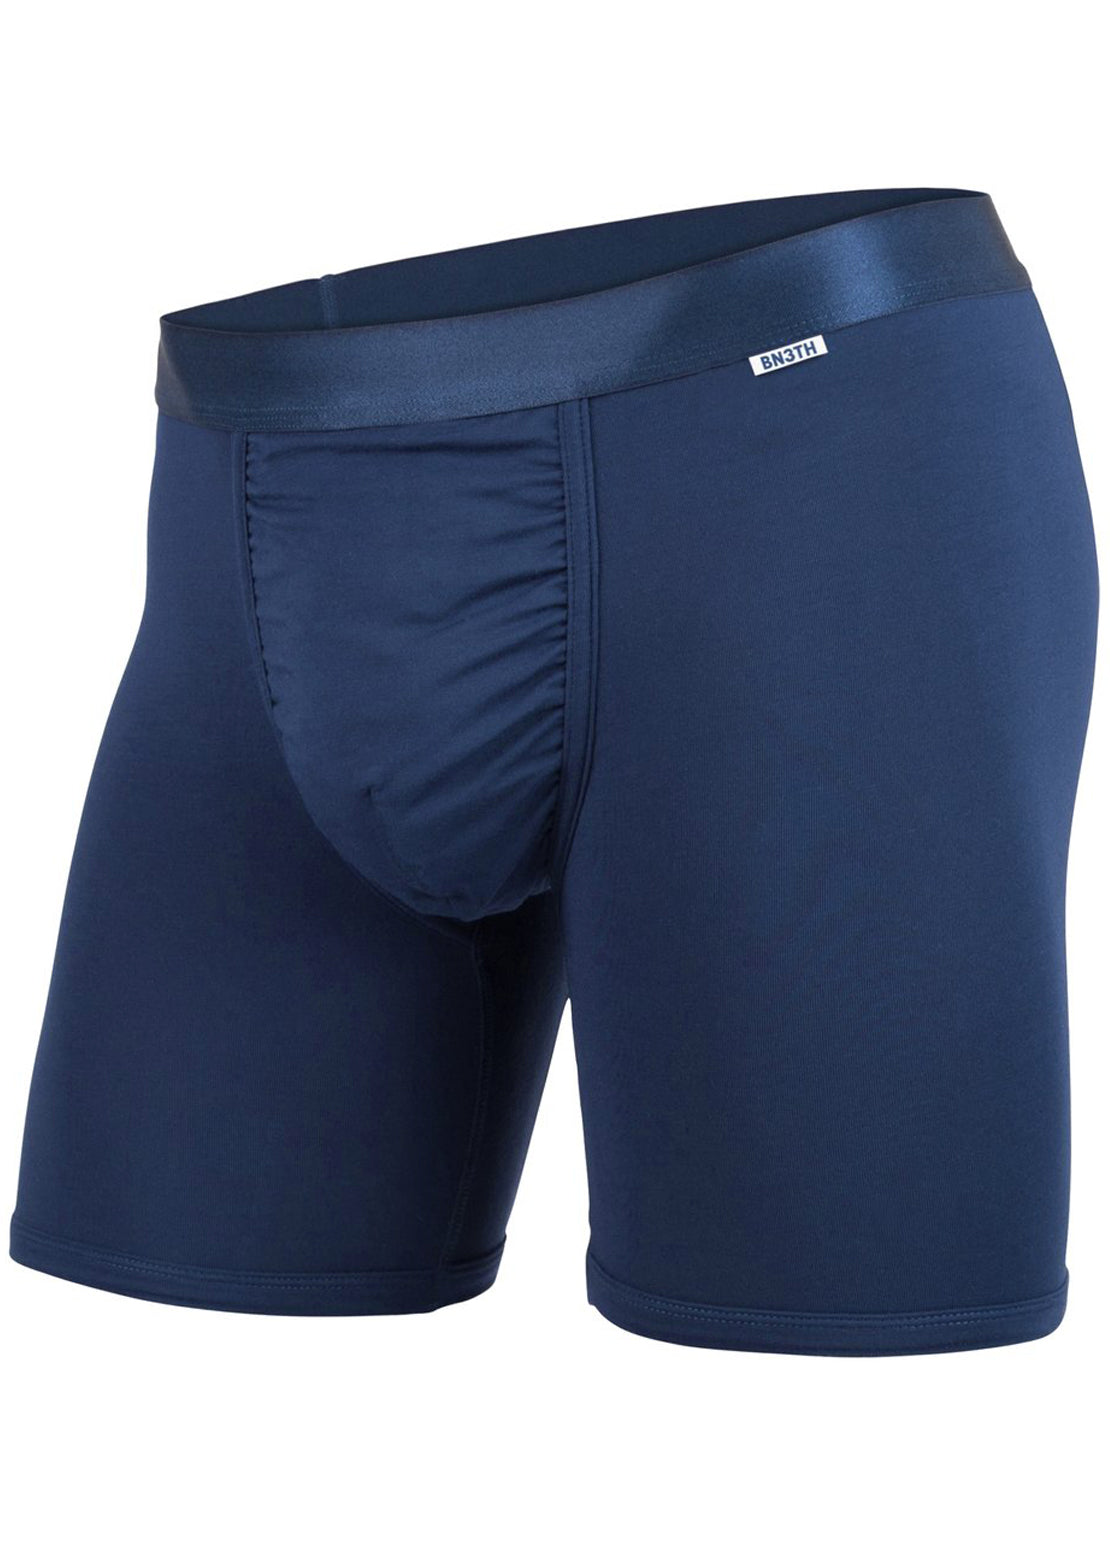 BN3TH Men's Modal Solid Brief Boxer Navy